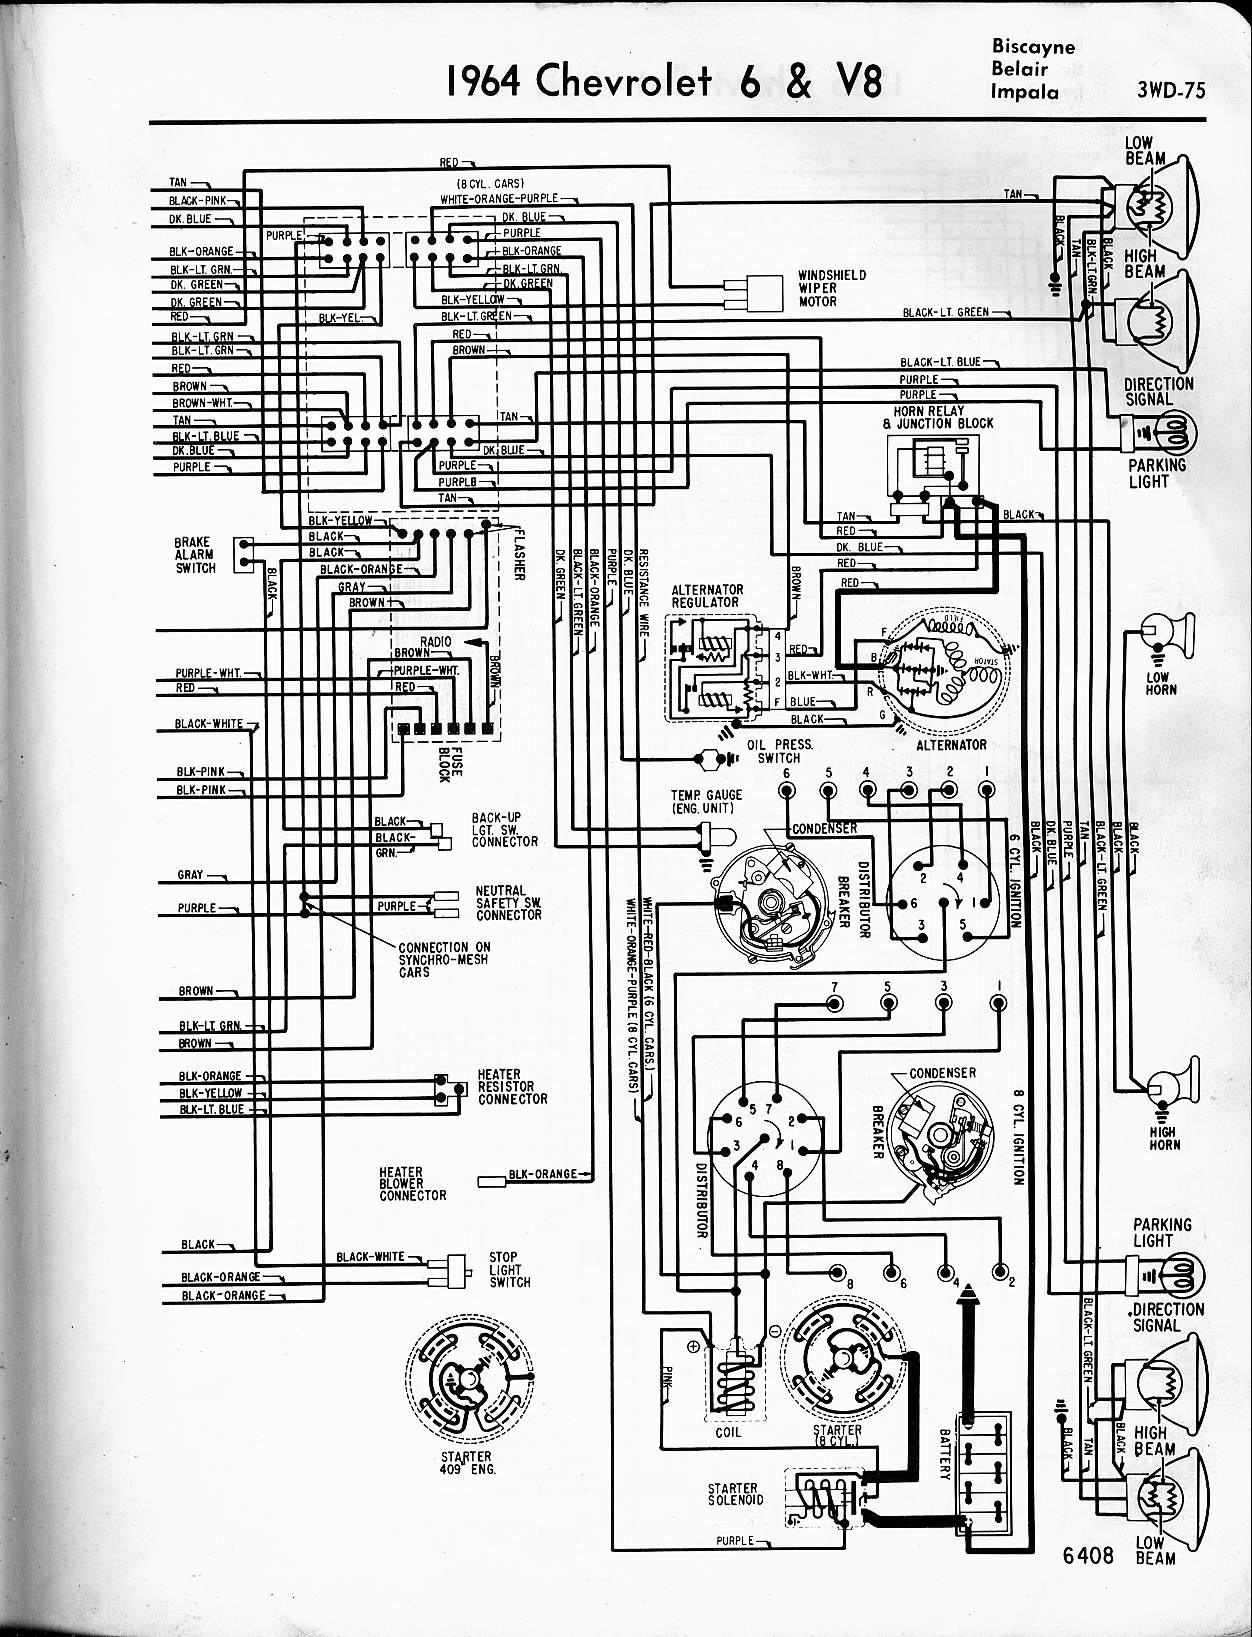 Diagrams Impala Windowiring - Wiring Diagram Mega on 1957 chevy truck wiring diagram, 1955 chevy wiring diagram, 1957 chevy fuse box diagram,